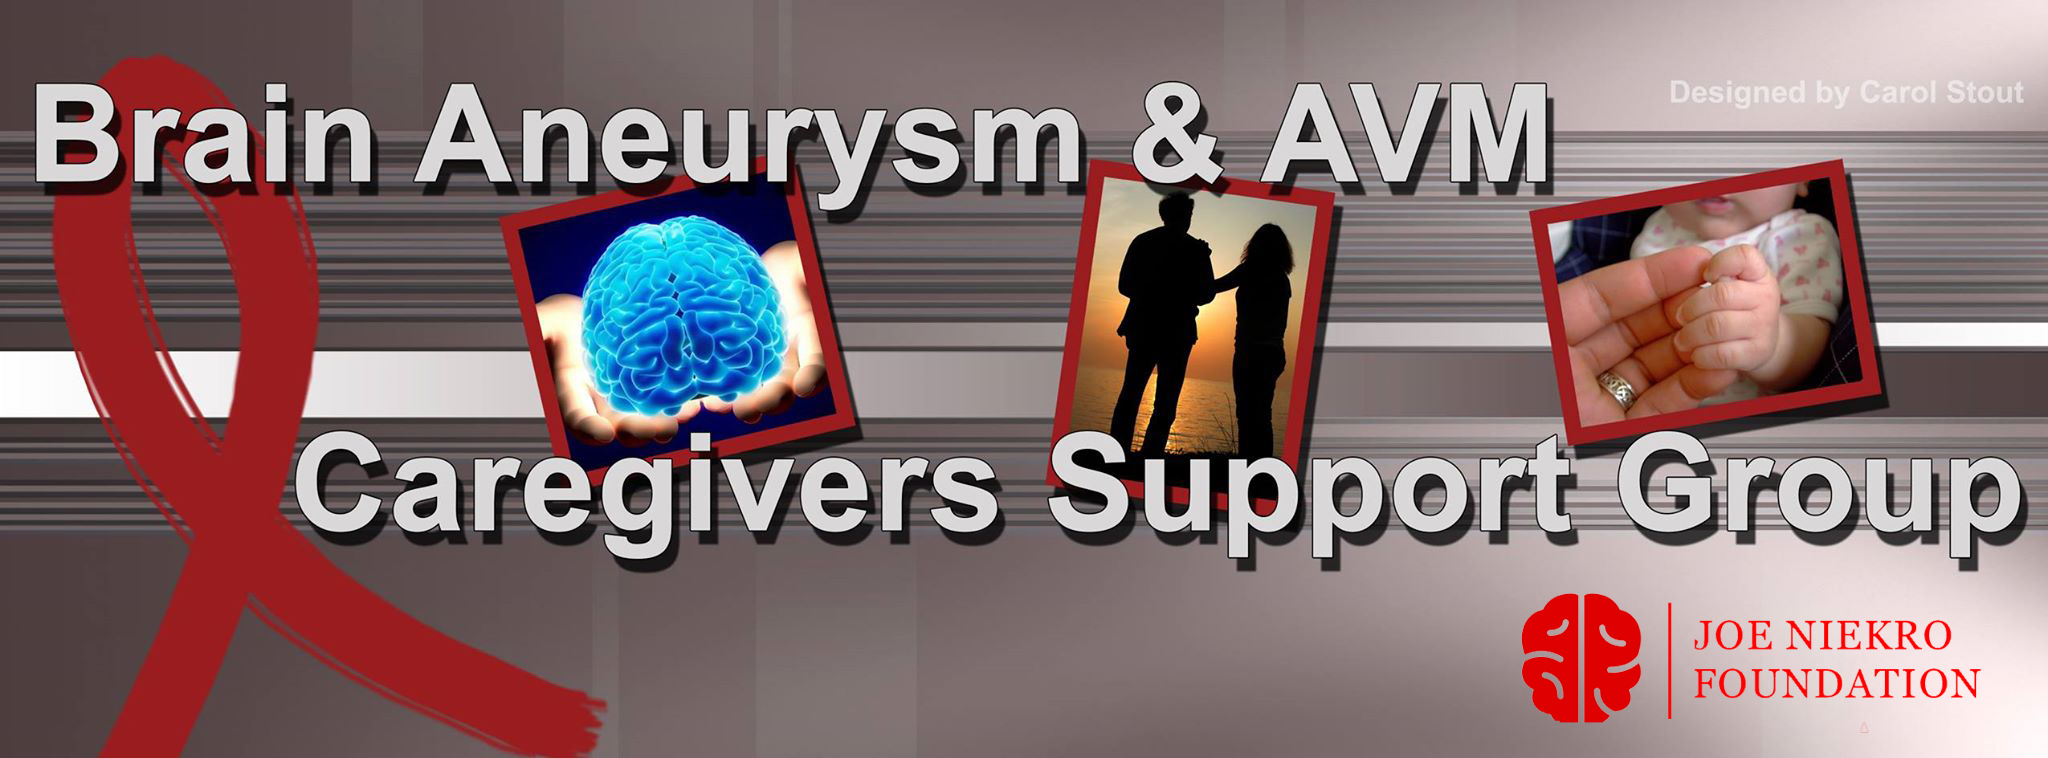 Caregivers Support Group Page -